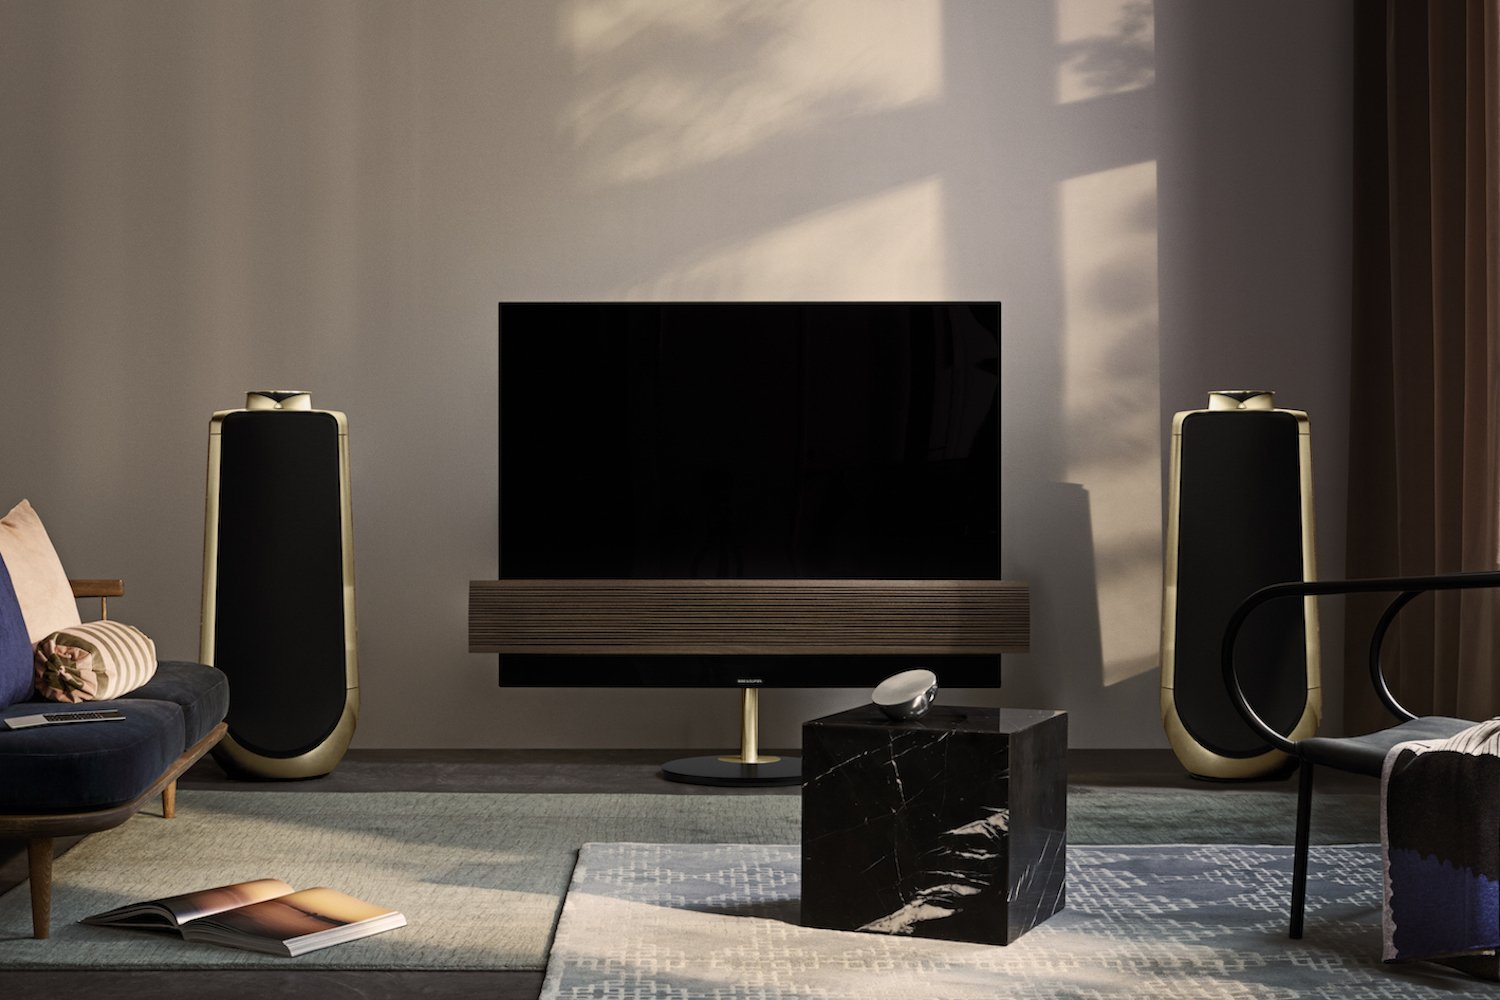 bang olufsen 39 s stunning oled tv and speaker get a new wood and brass finished edition. Black Bedroom Furniture Sets. Home Design Ideas